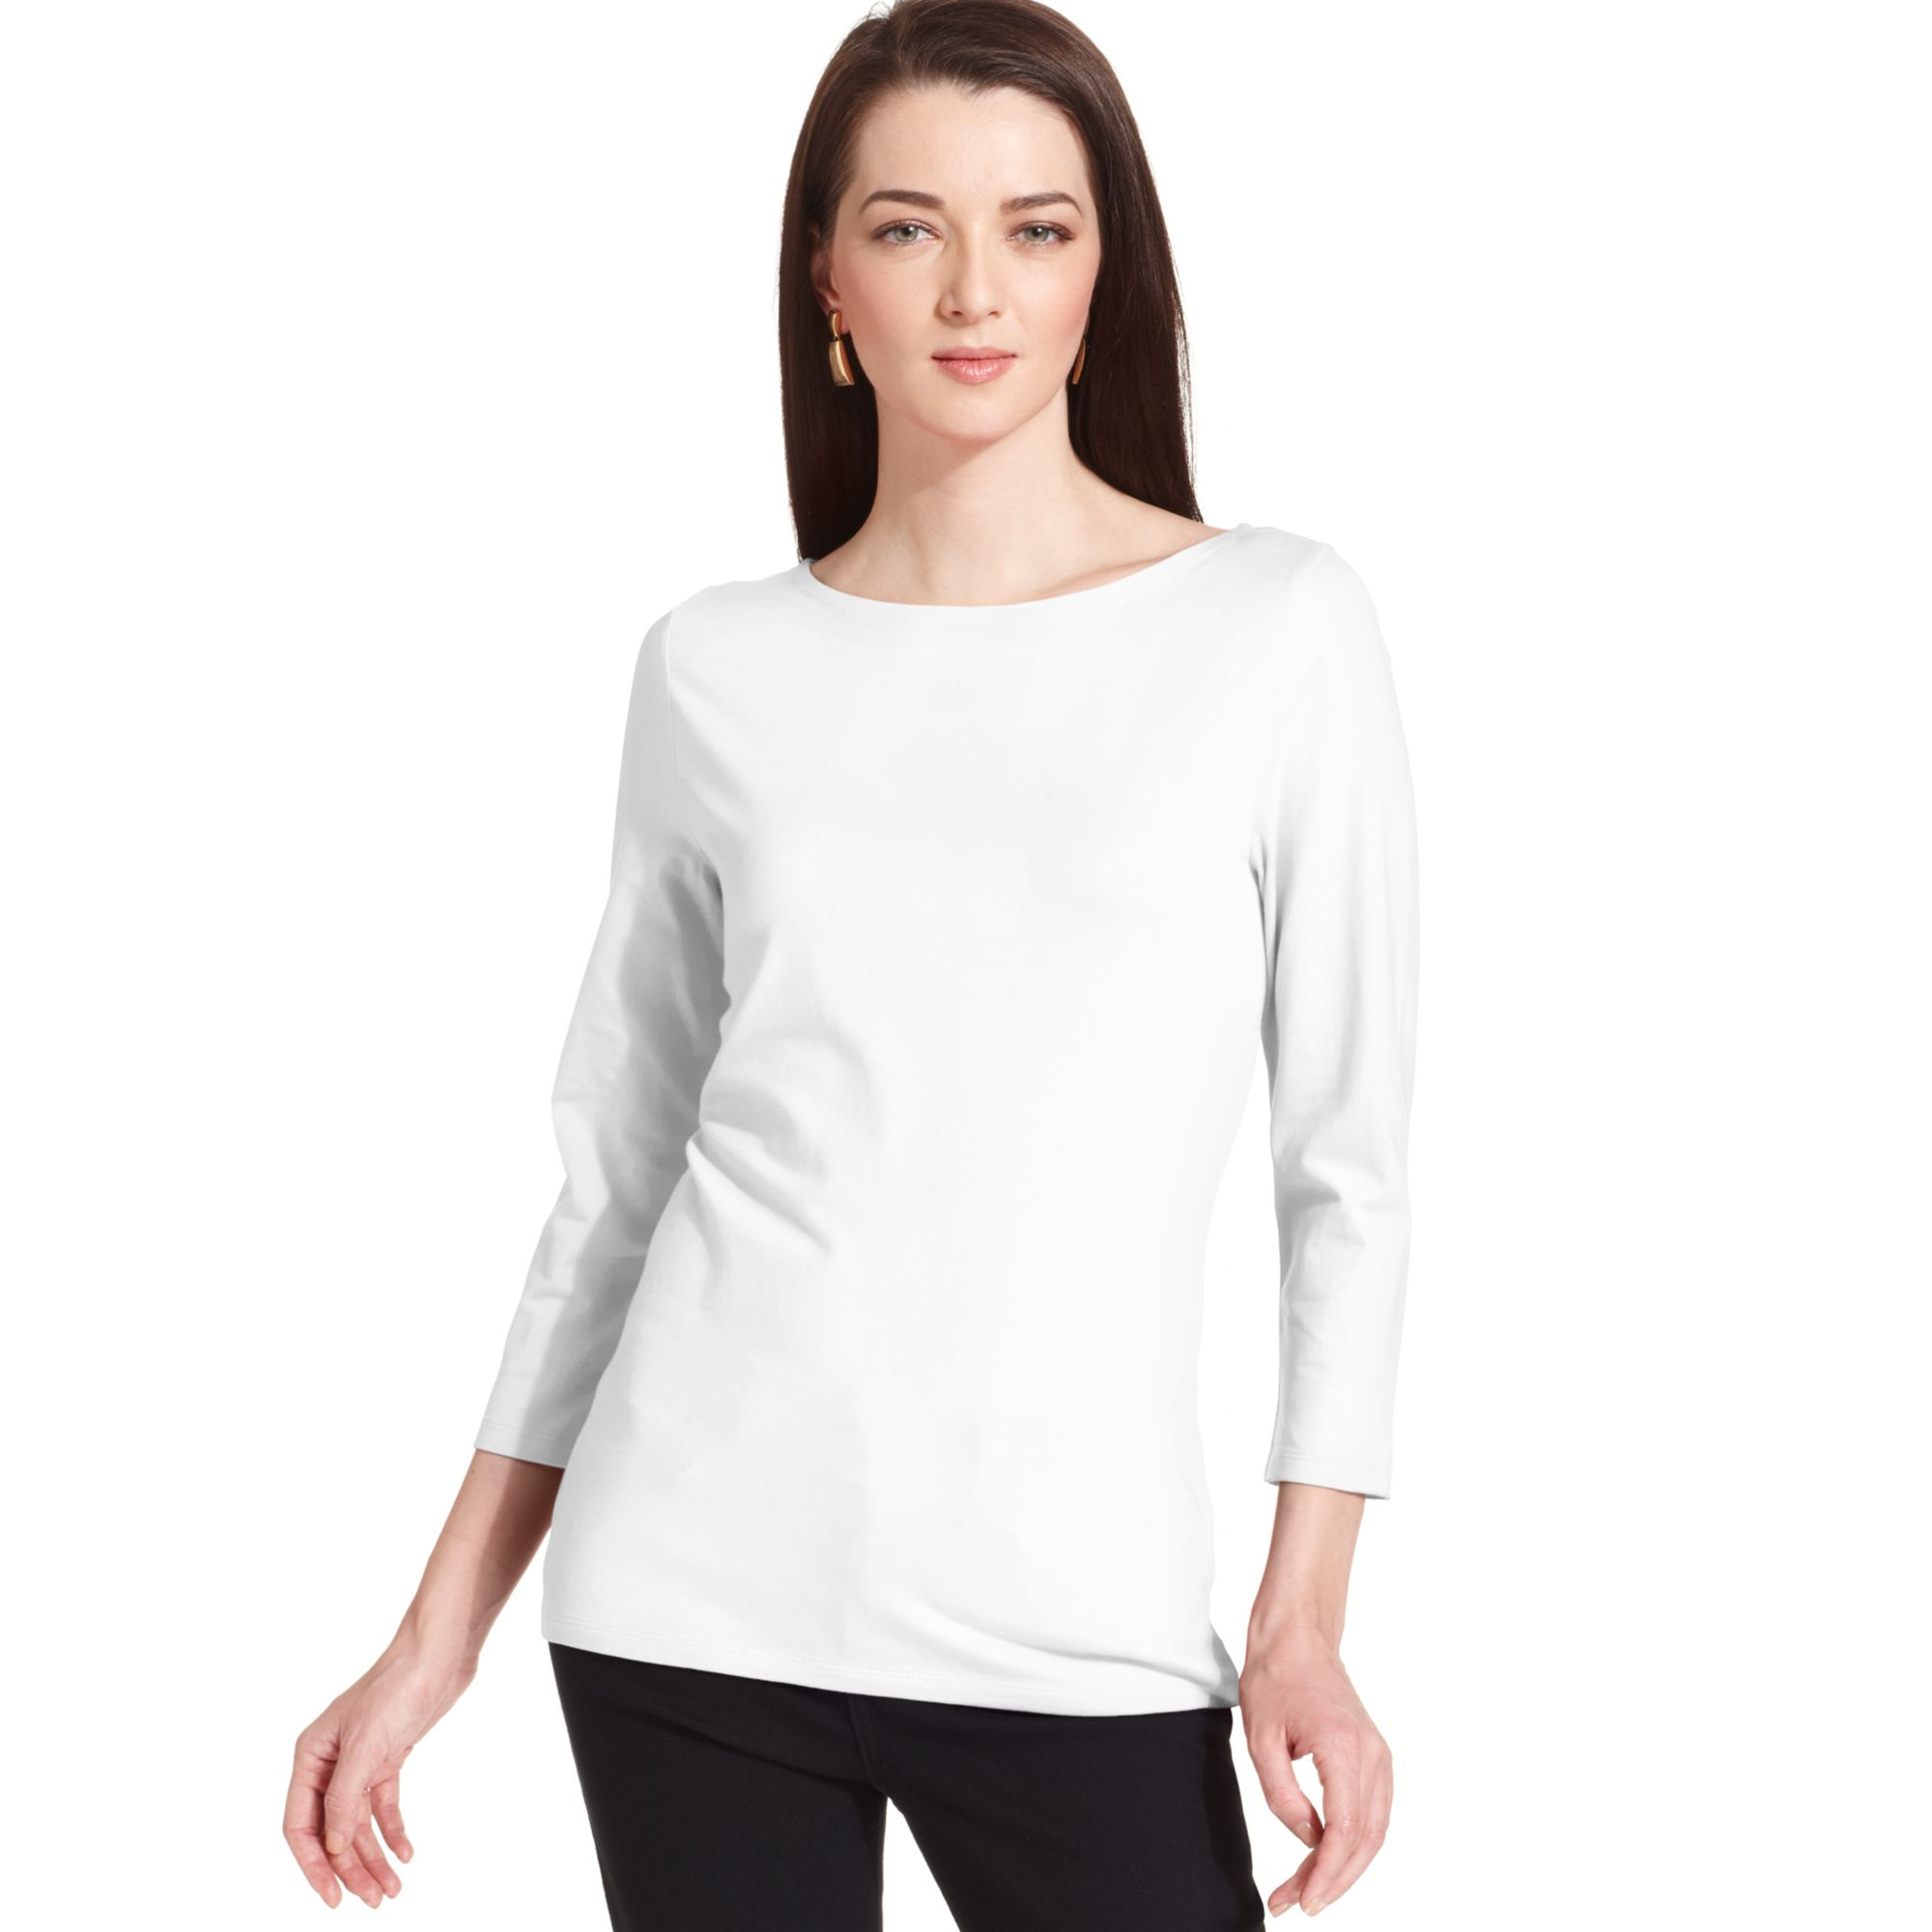 jones new york three quarter sleeve boat neck top in white. Black Bedroom Furniture Sets. Home Design Ideas